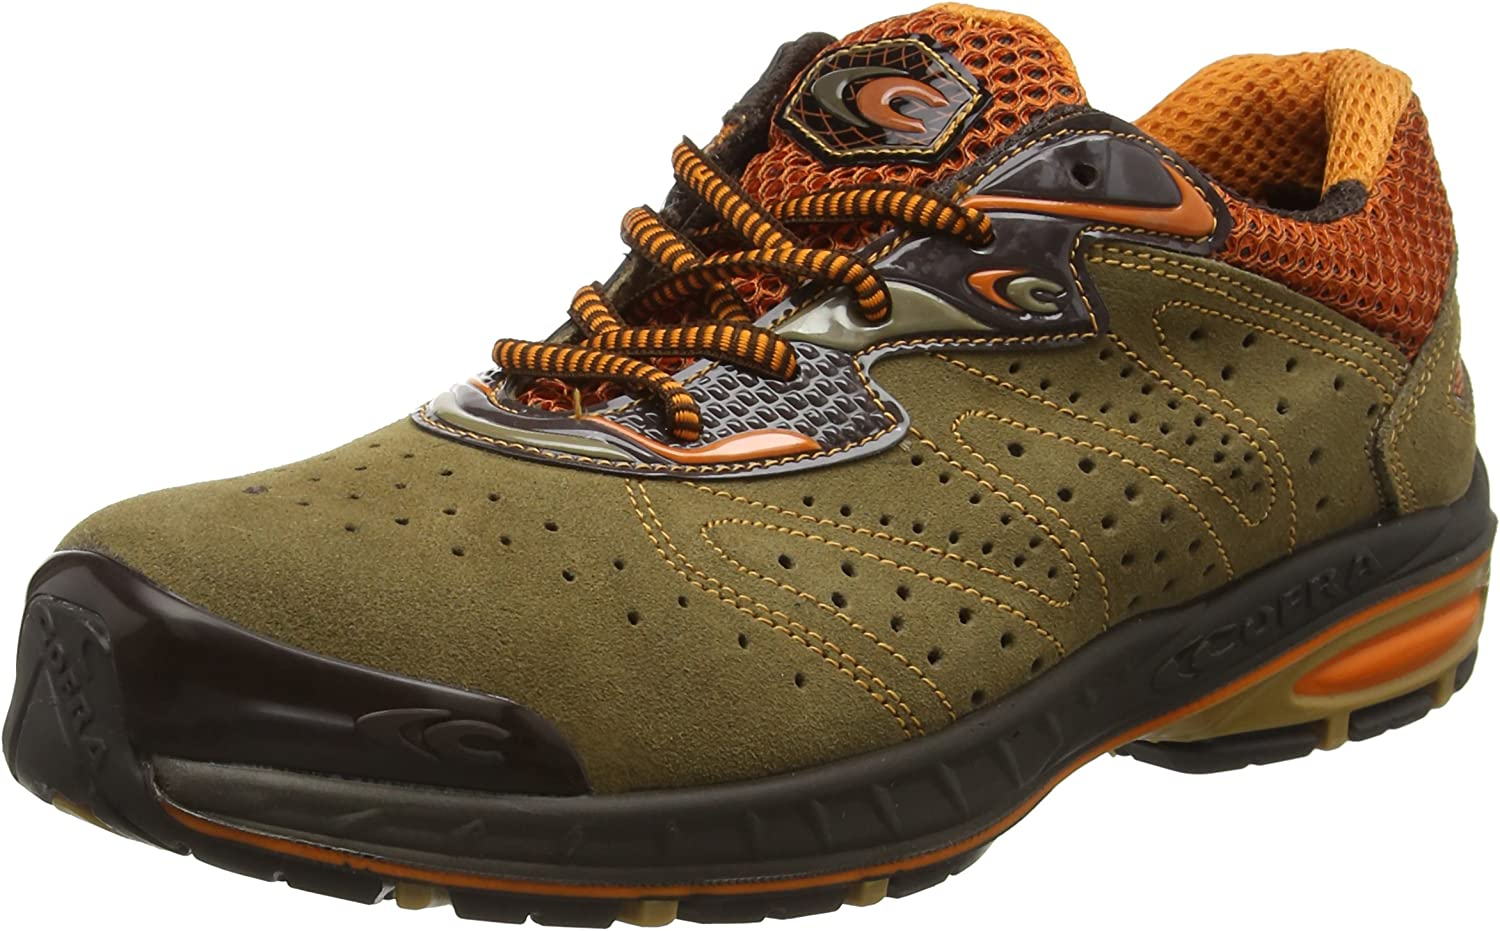 Cofra 19020-001.W42 Size 42 S1 P SRC Cantera  Safety shoes - Grey orange